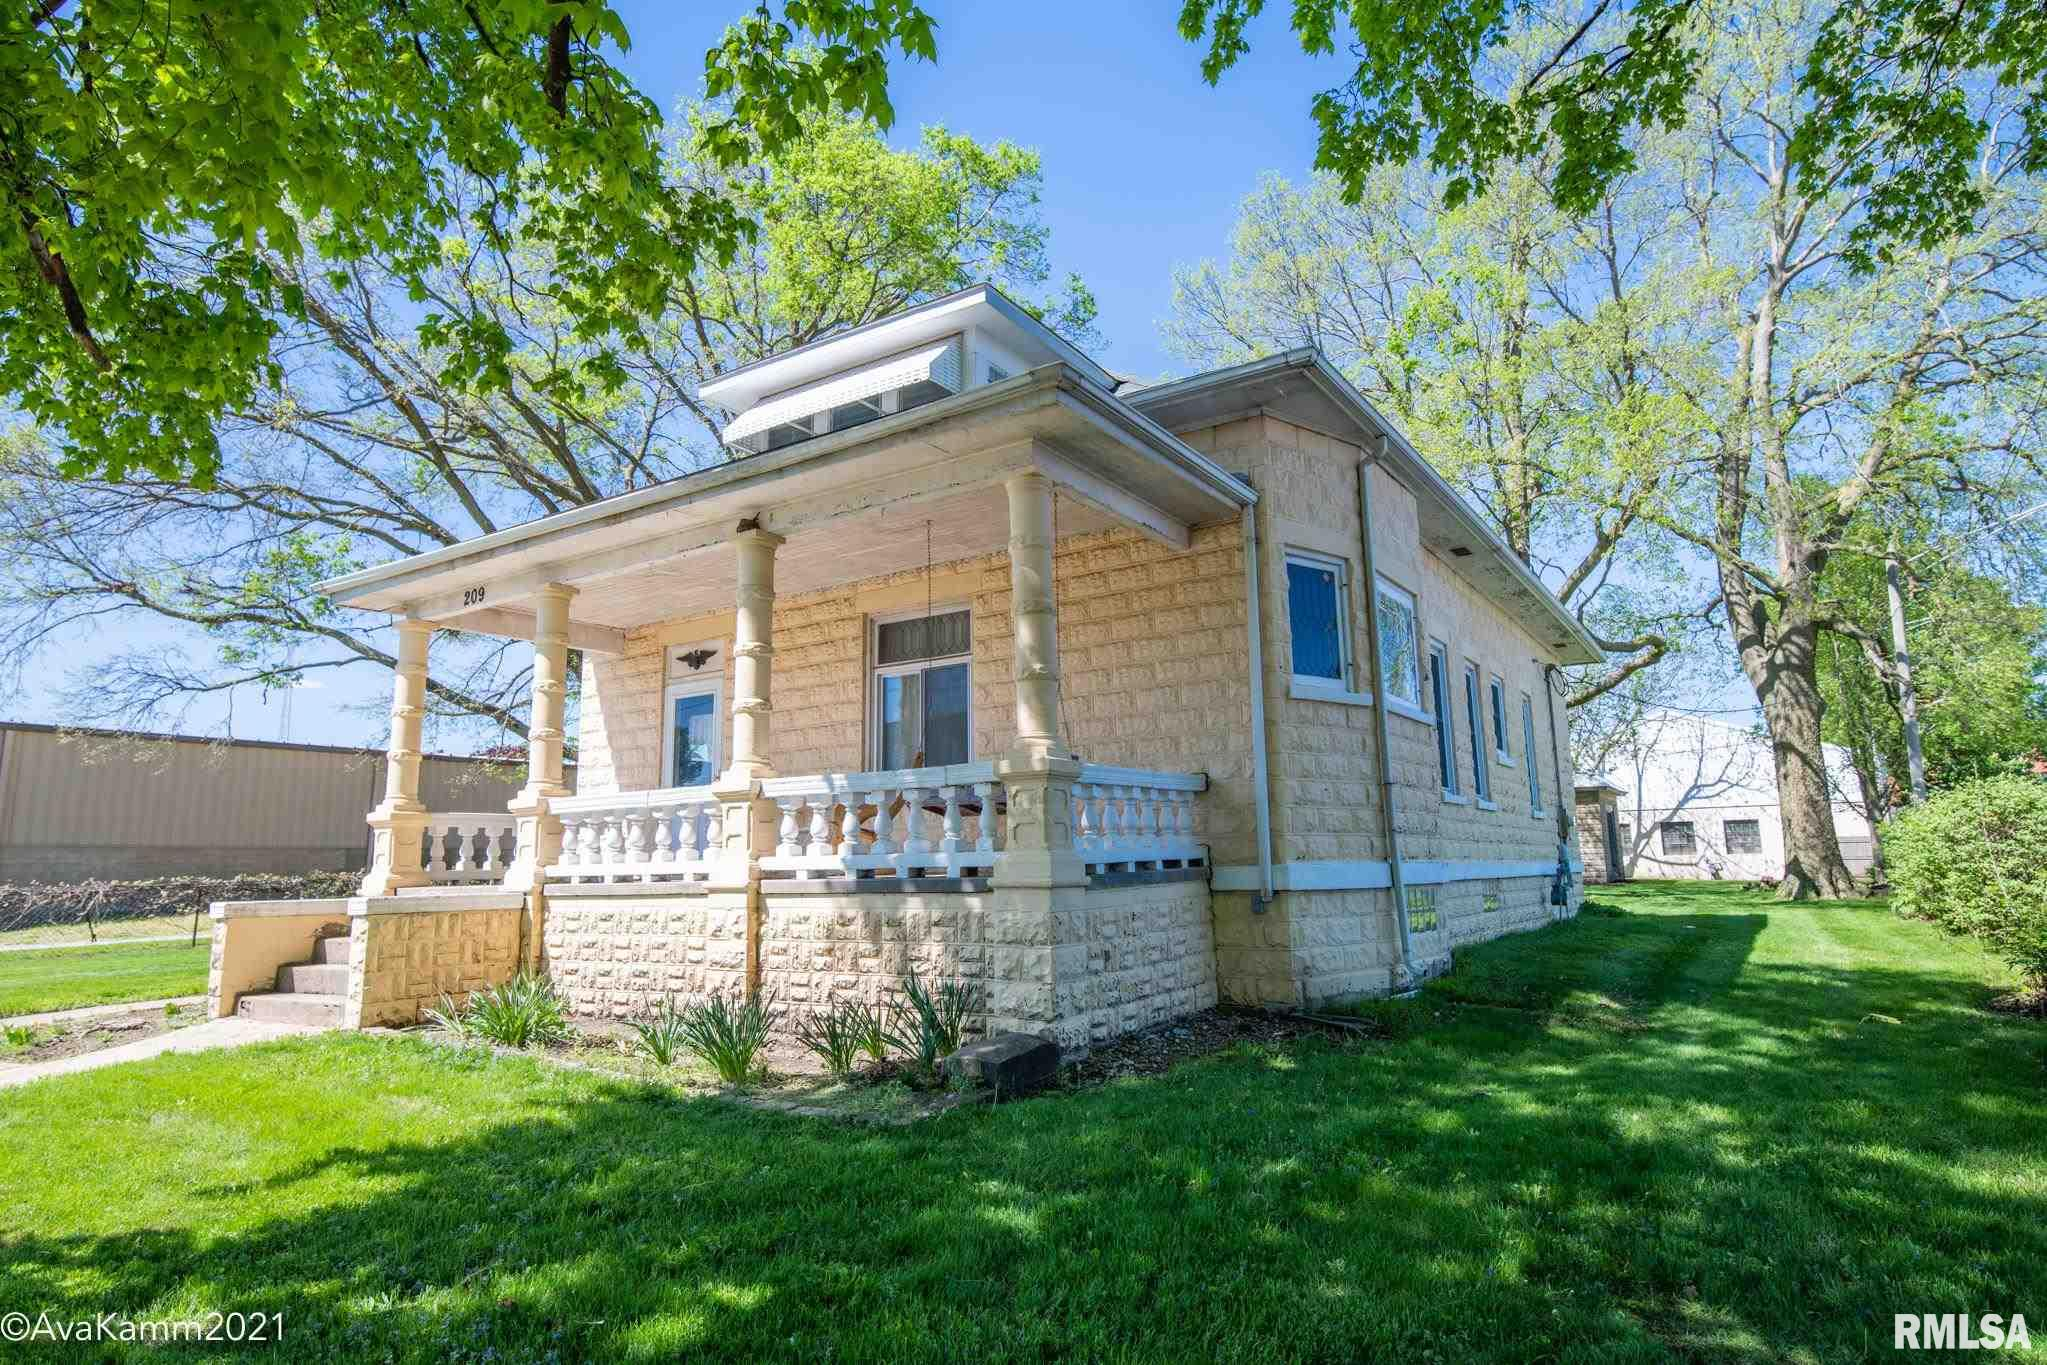 209 S JAMES Property Photo - Tremont, IL real estate listing